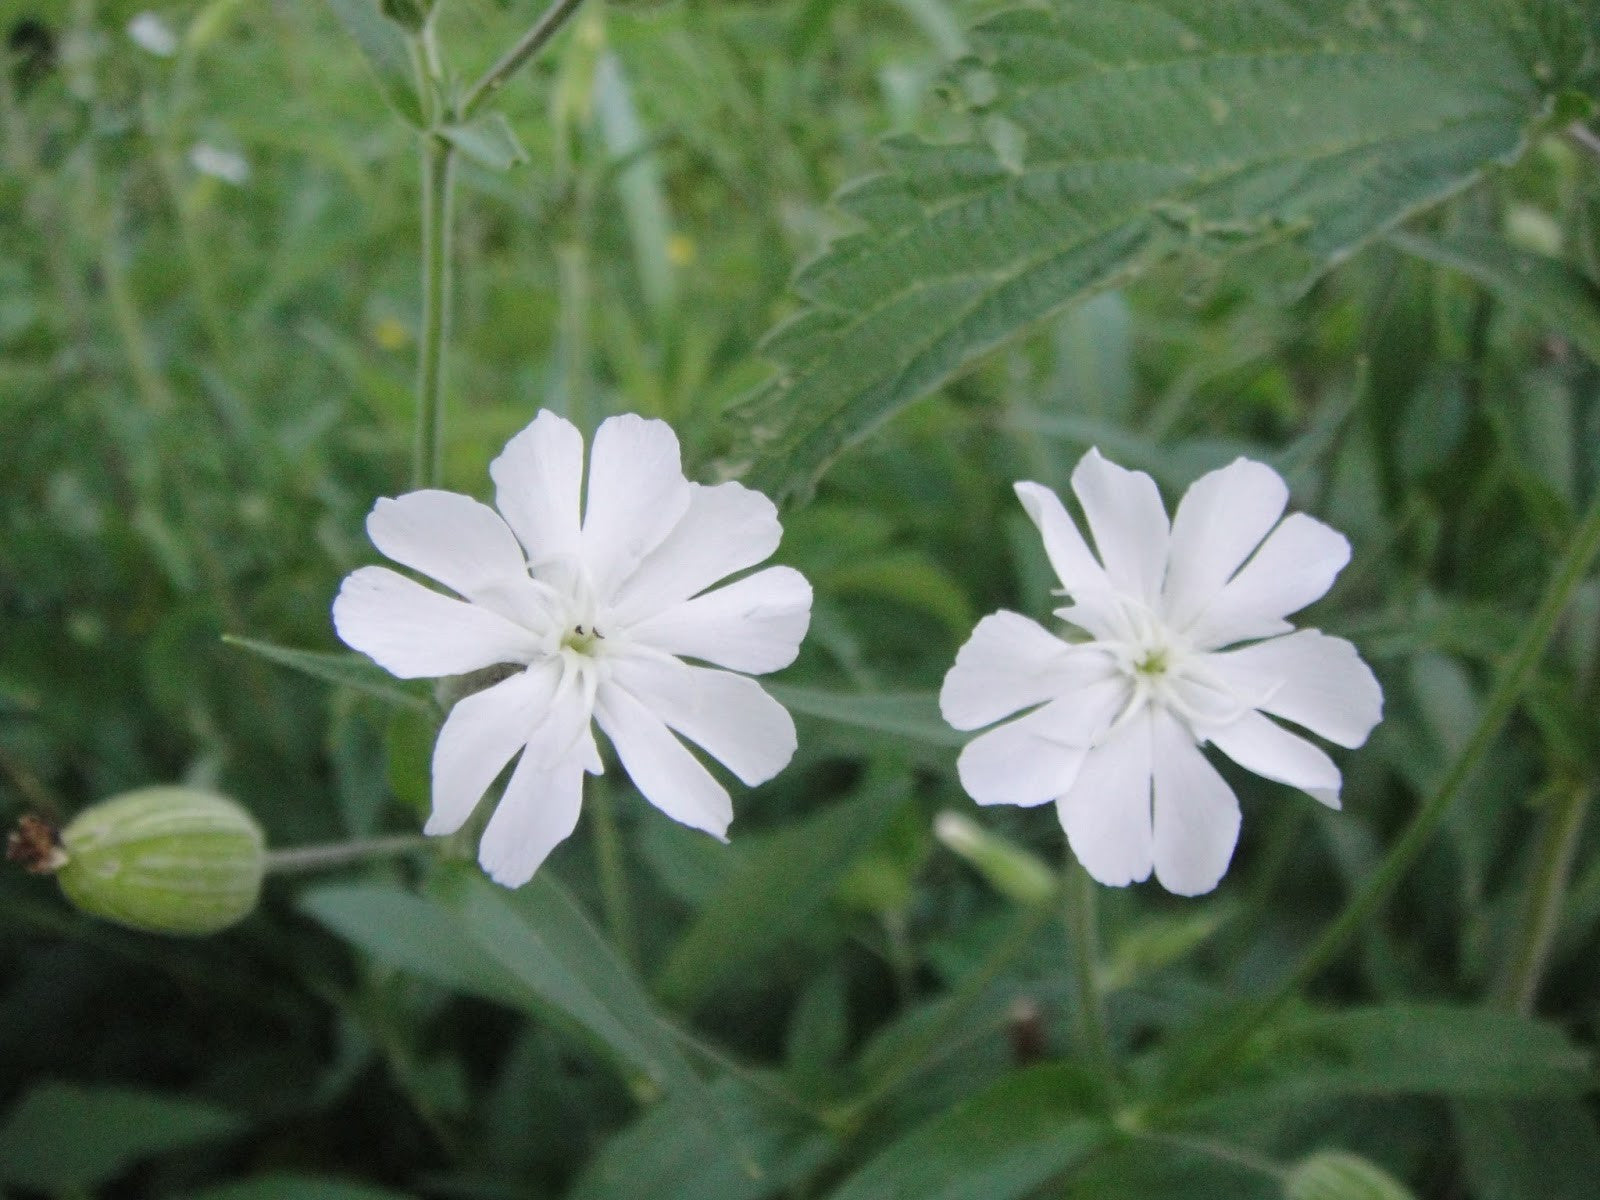 Silene undulata - Silene capensis - African Dream Root- Indigenous South African Perrenial Shrub - 10 Seeds